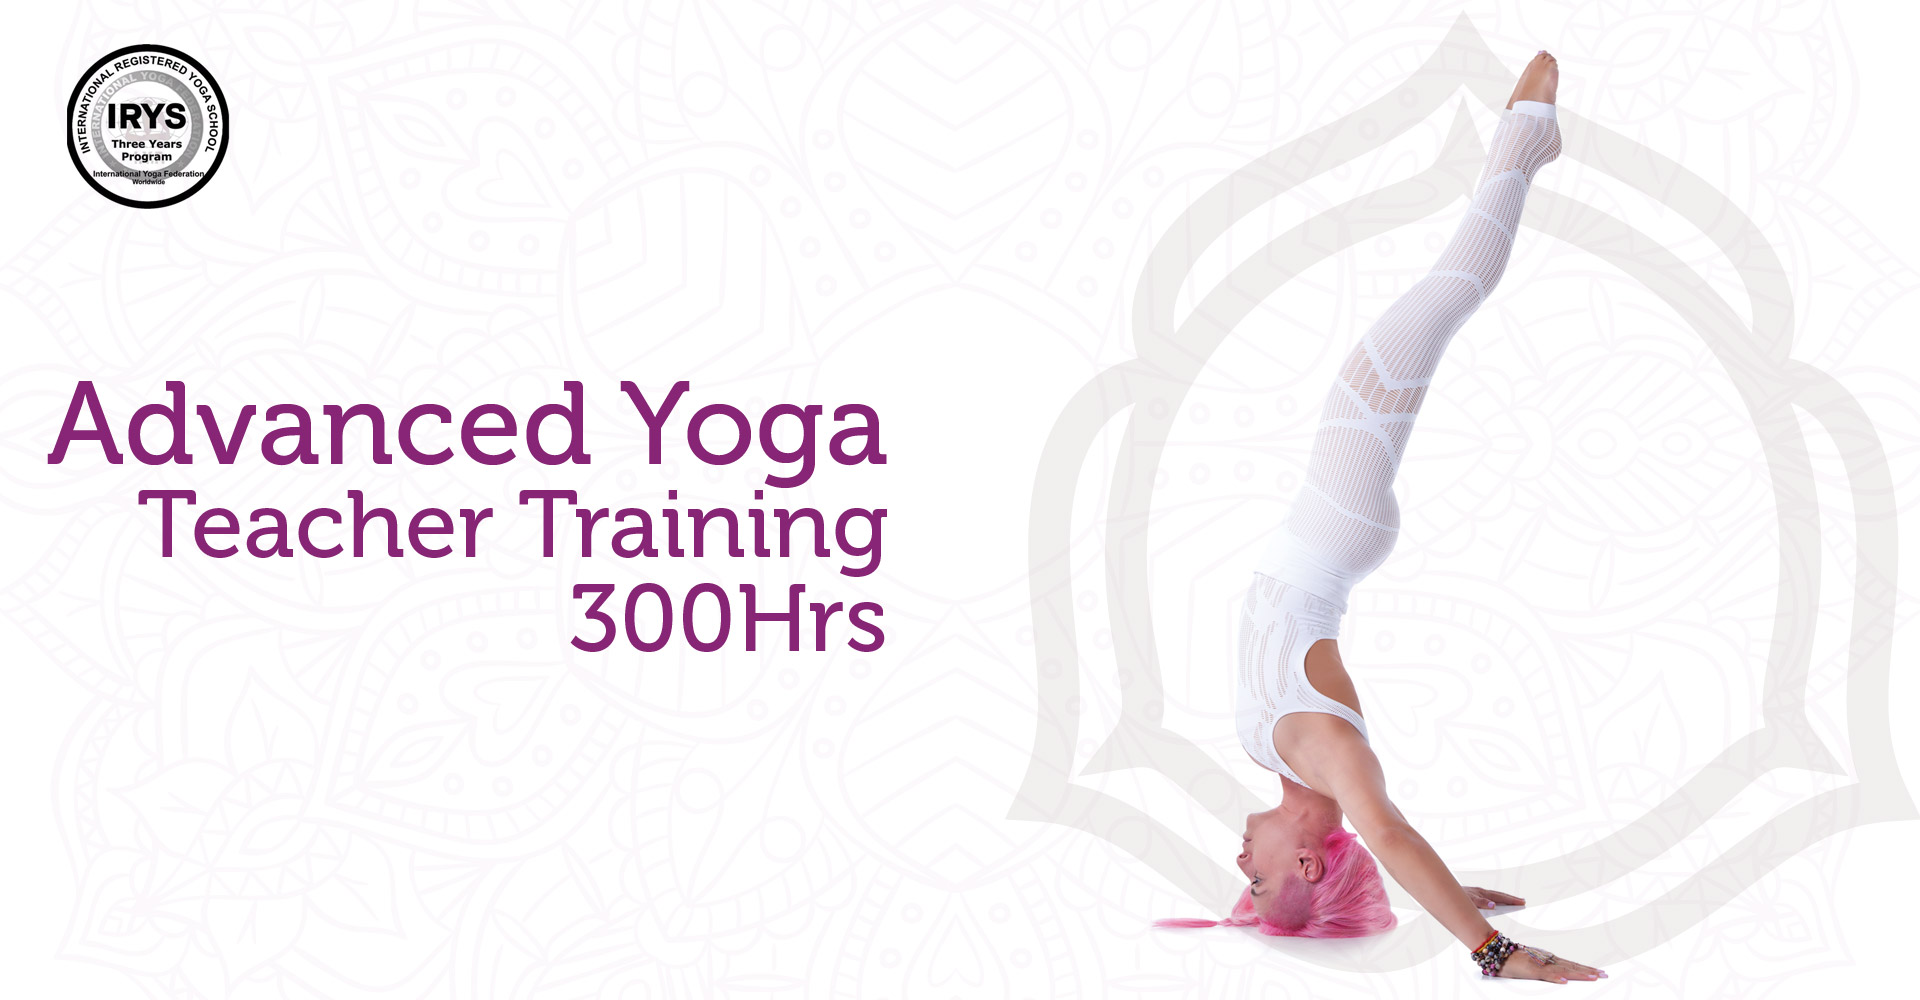 Advanced Yoga Teacher Training 300hrs - Mandala